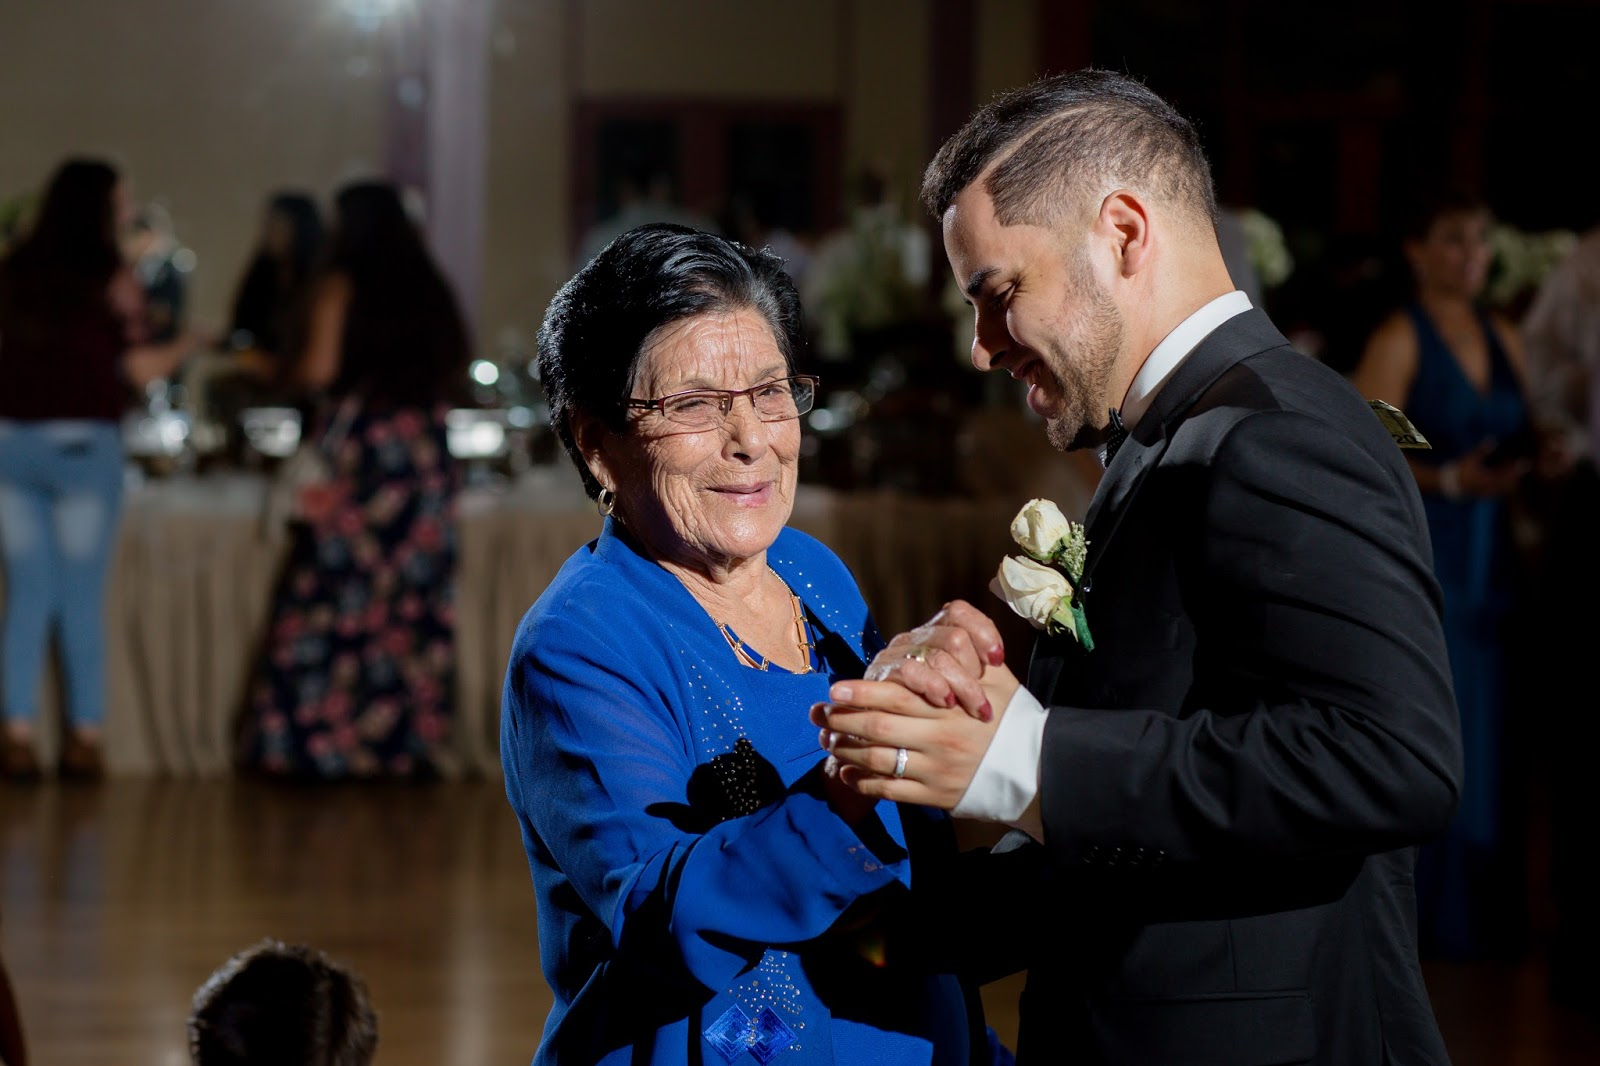 Grandmother of Bride and Groom Dance together